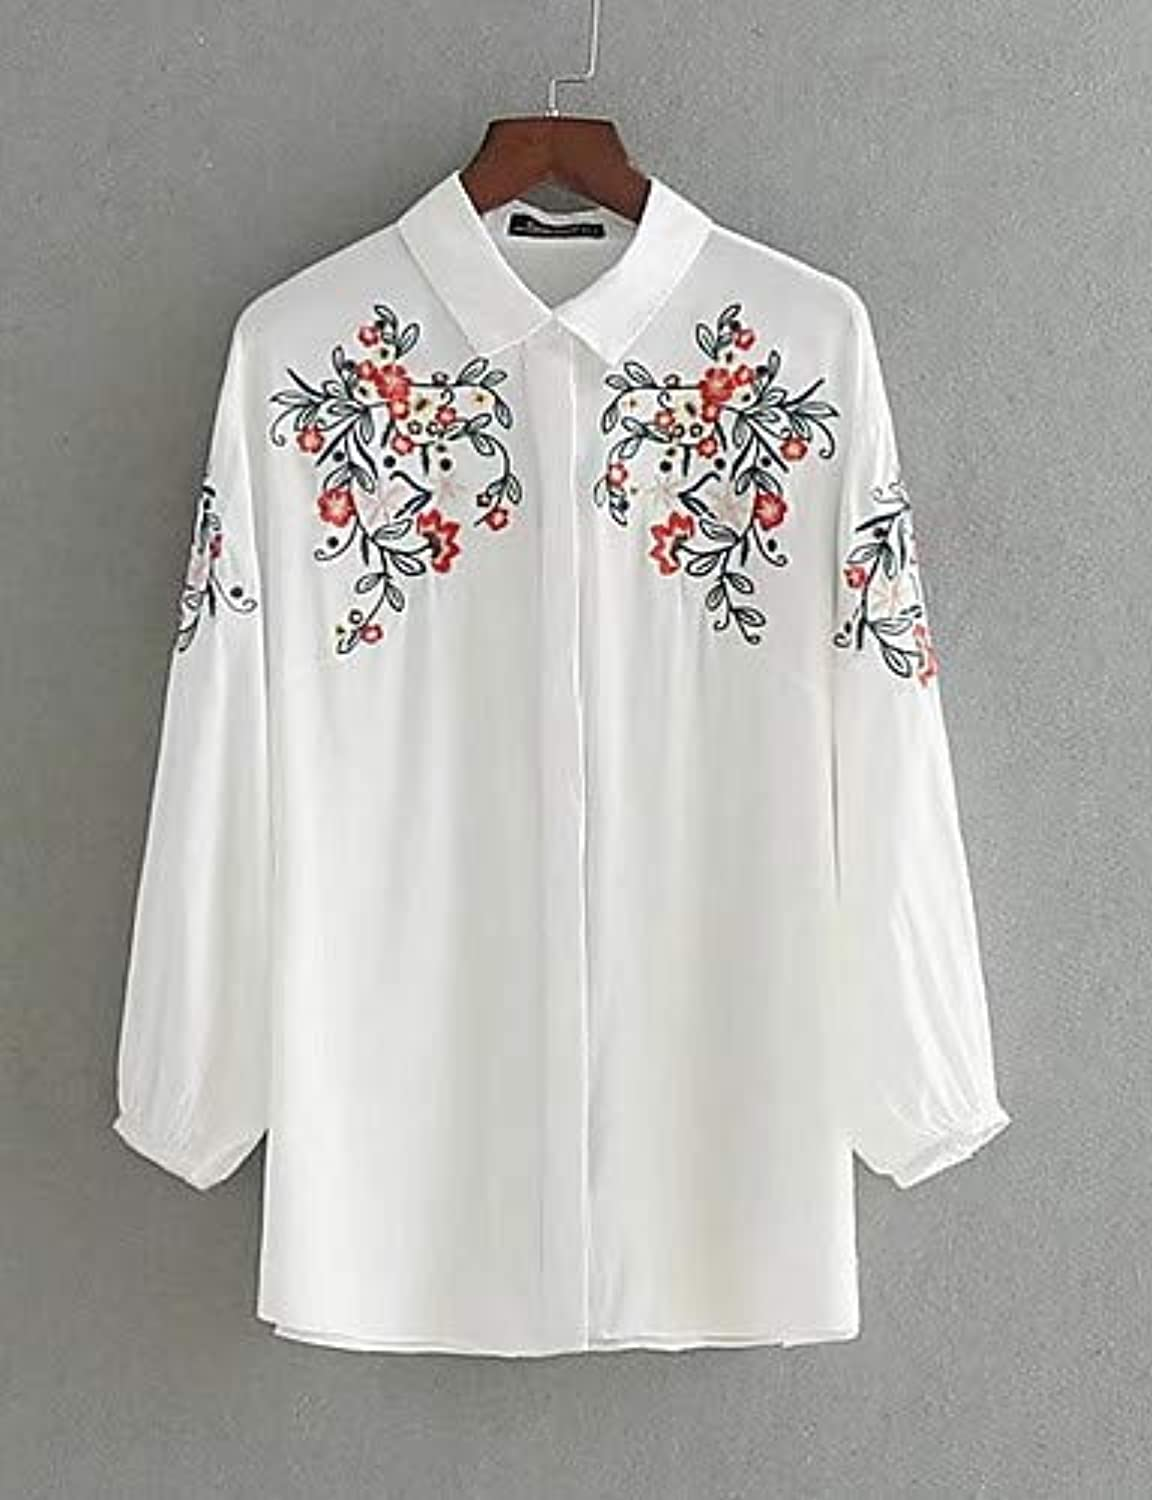 Women's Basic Cotton Shirt  Floral Embroidered Shirt Collar